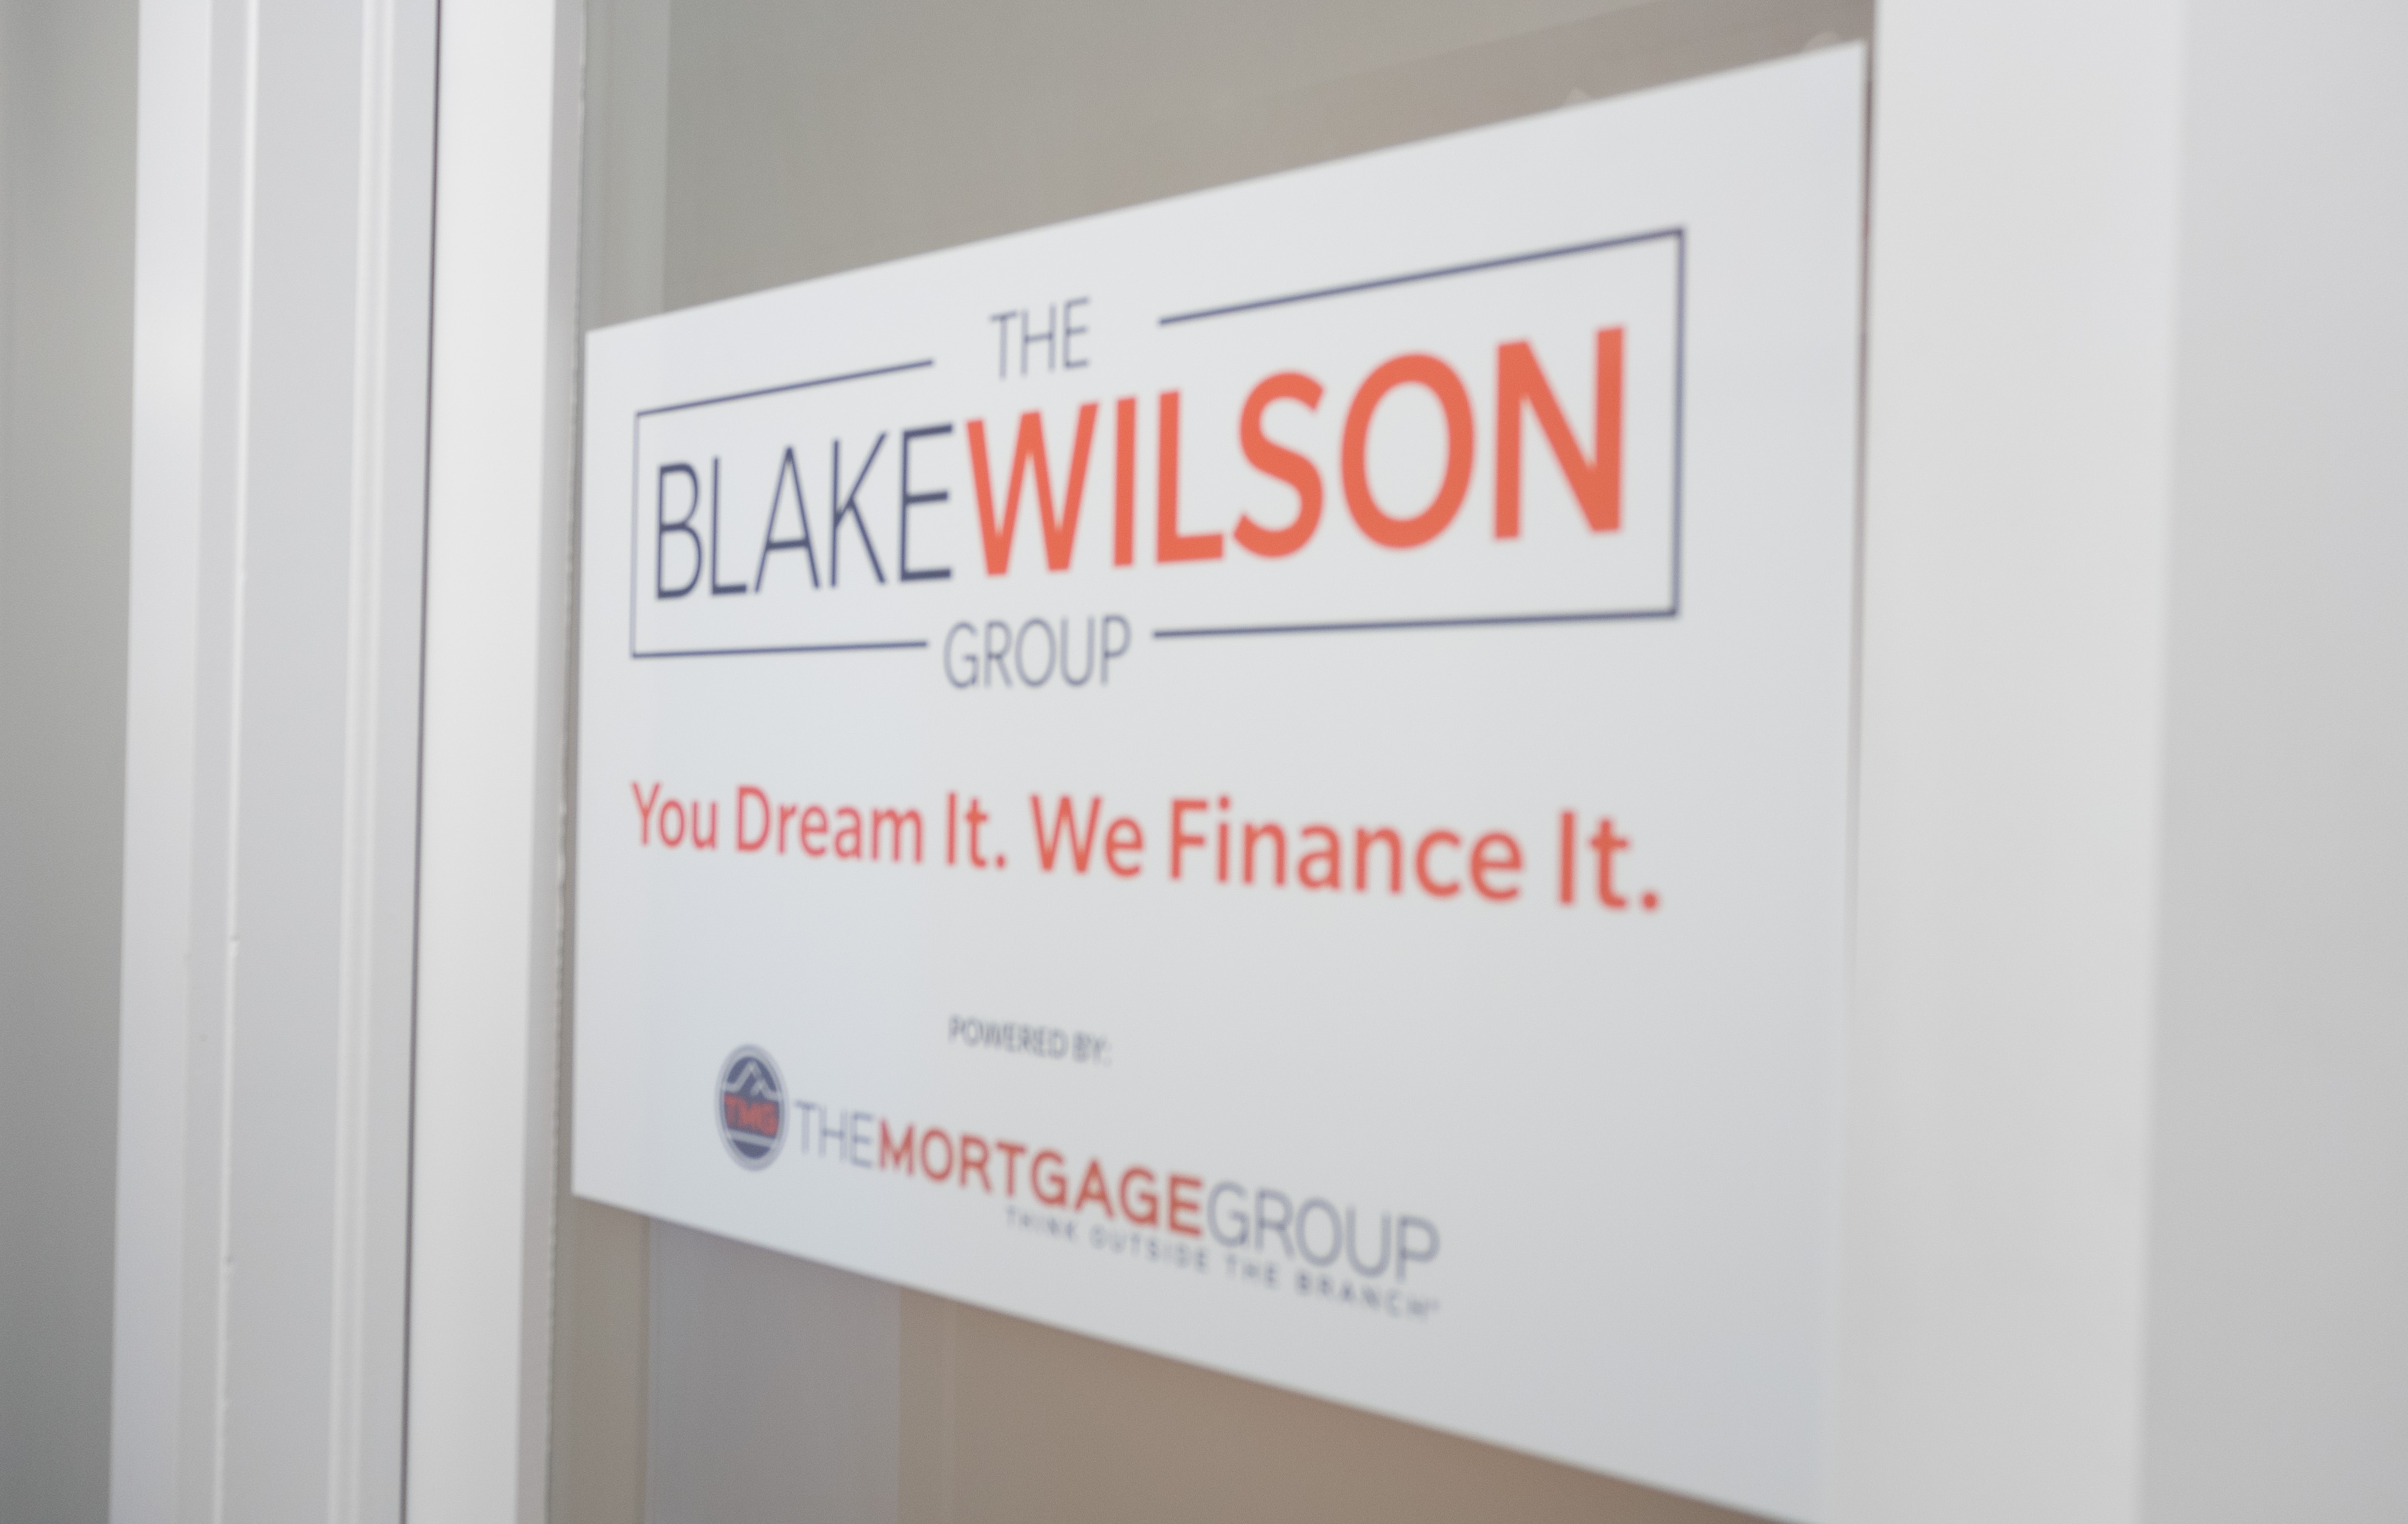 The Blake Wilson Group Is Evolving To Serve You Better